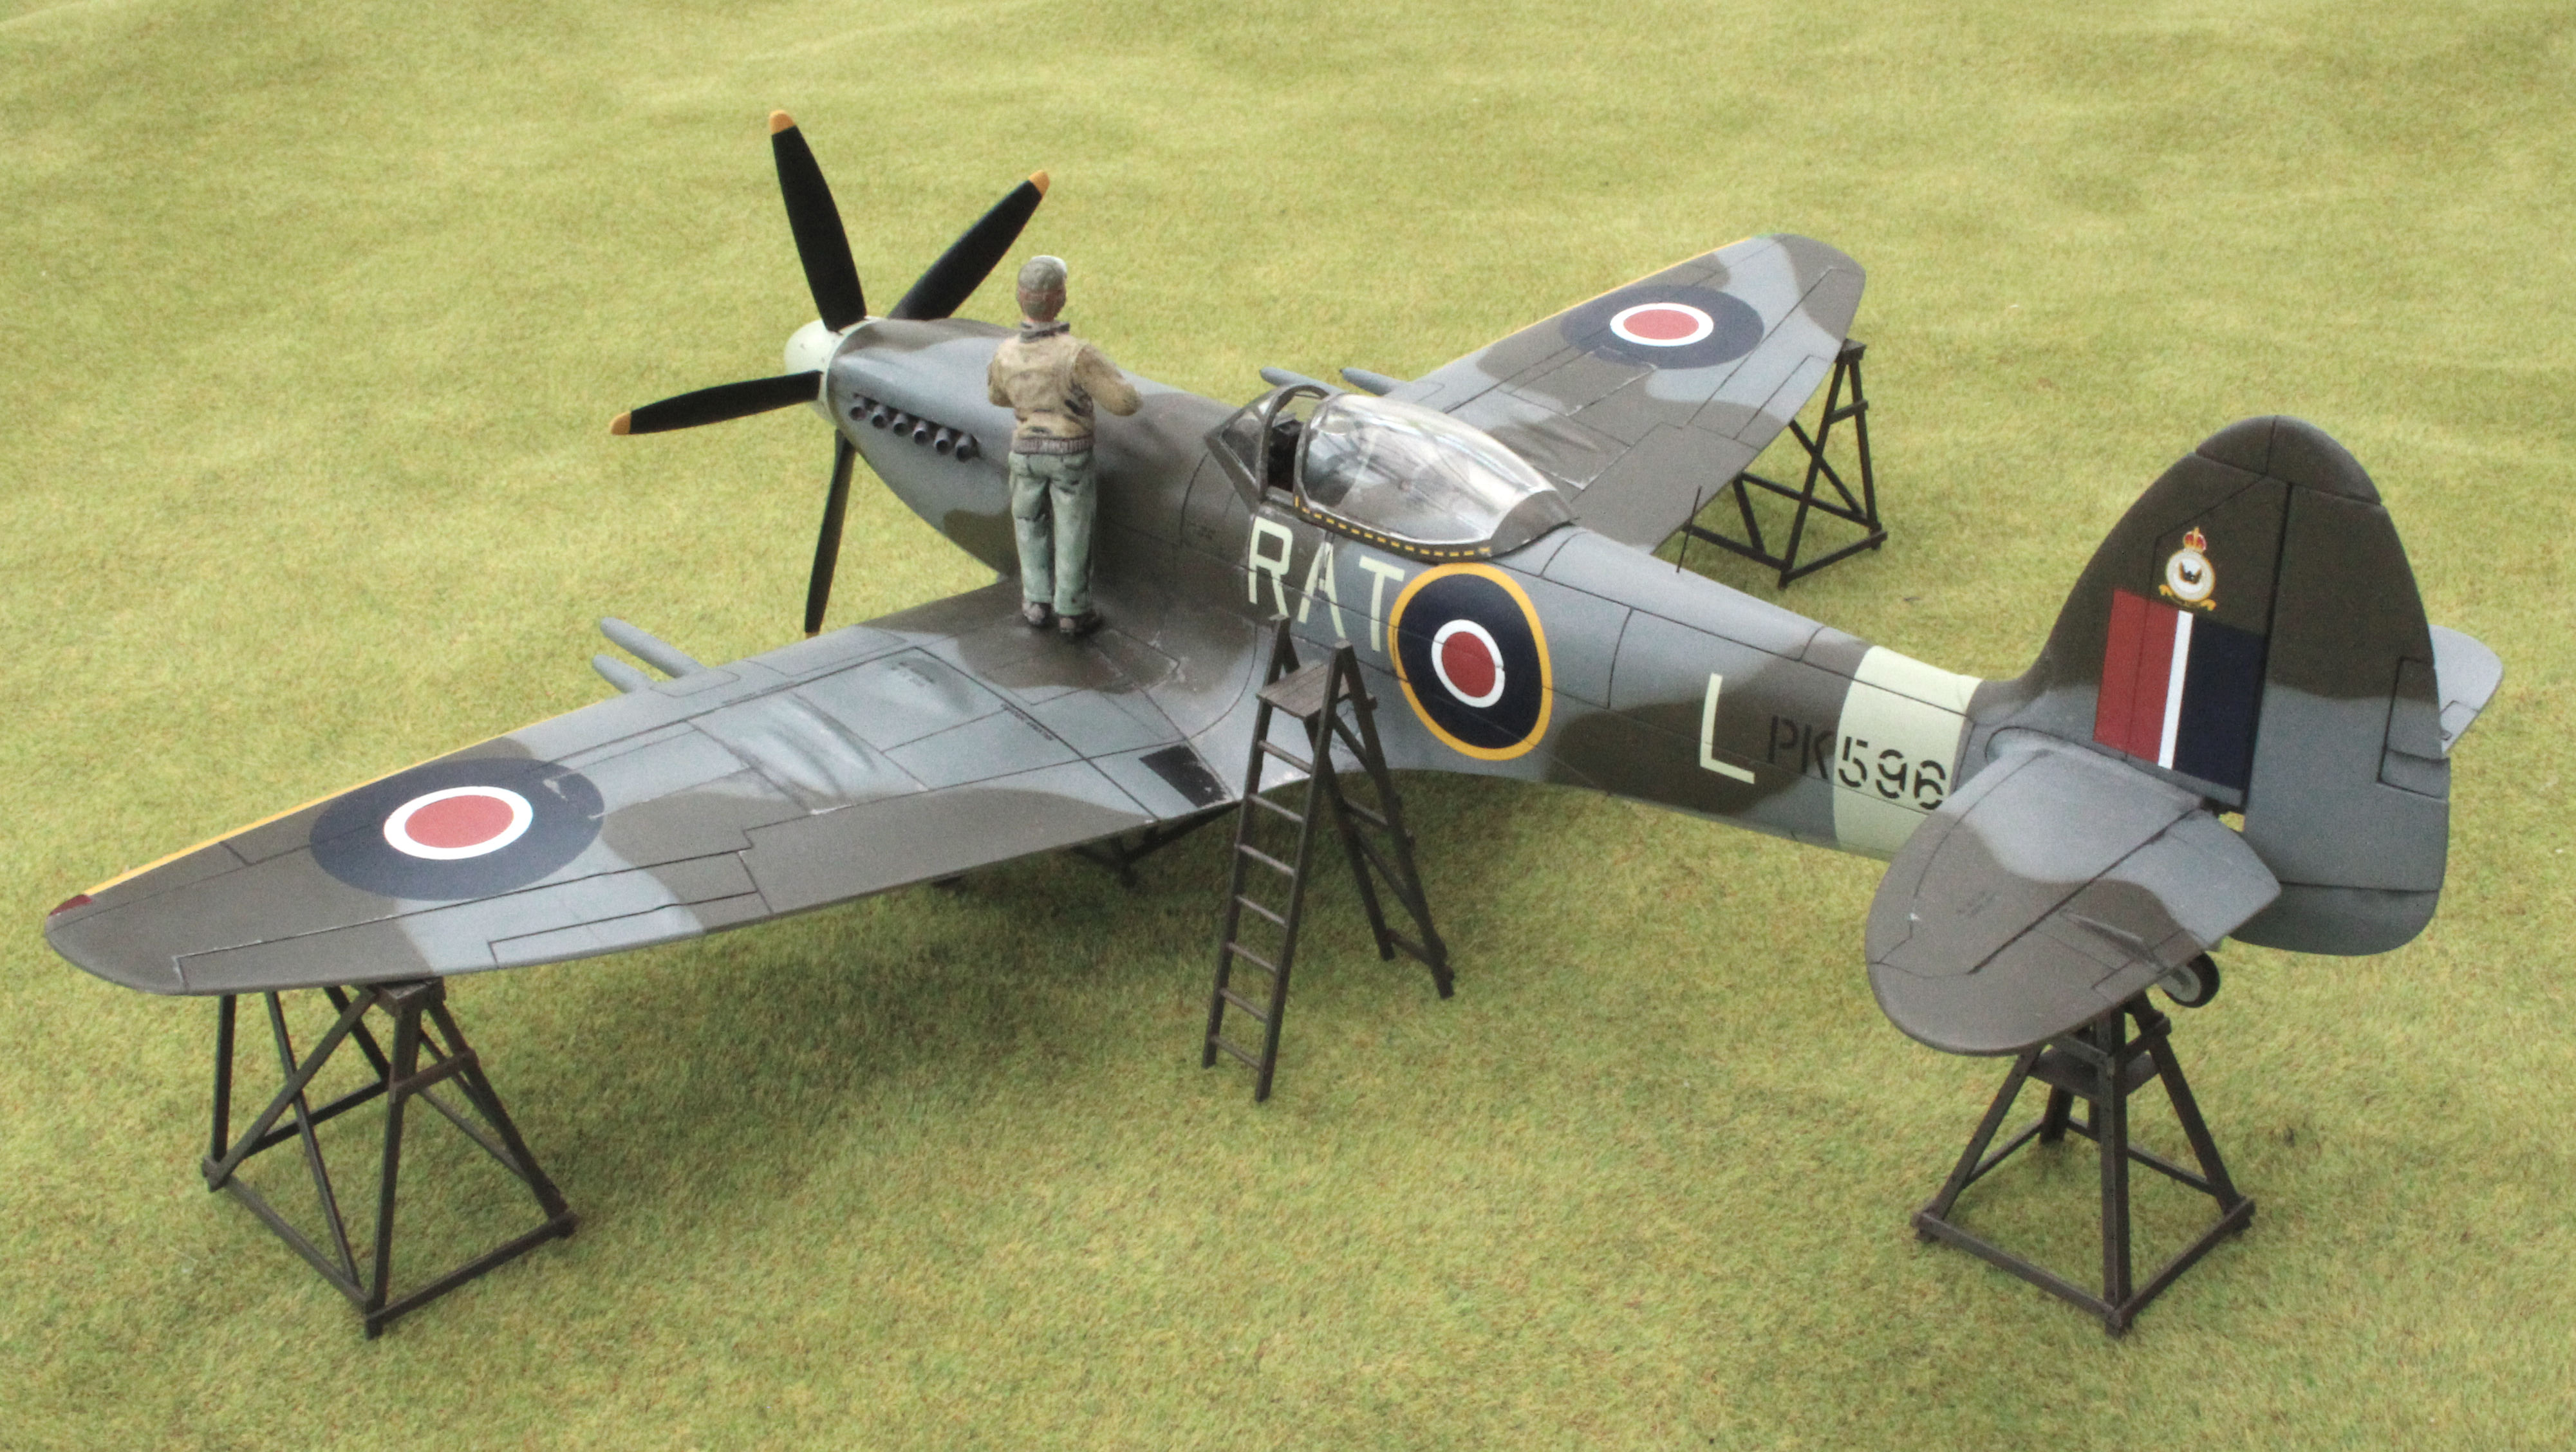 Supermarine Spitfire Mk.22, 613 (City of Manchester) Squadron, Royal Auxiliary Air Force. Revell kit in 1/32nd scale.